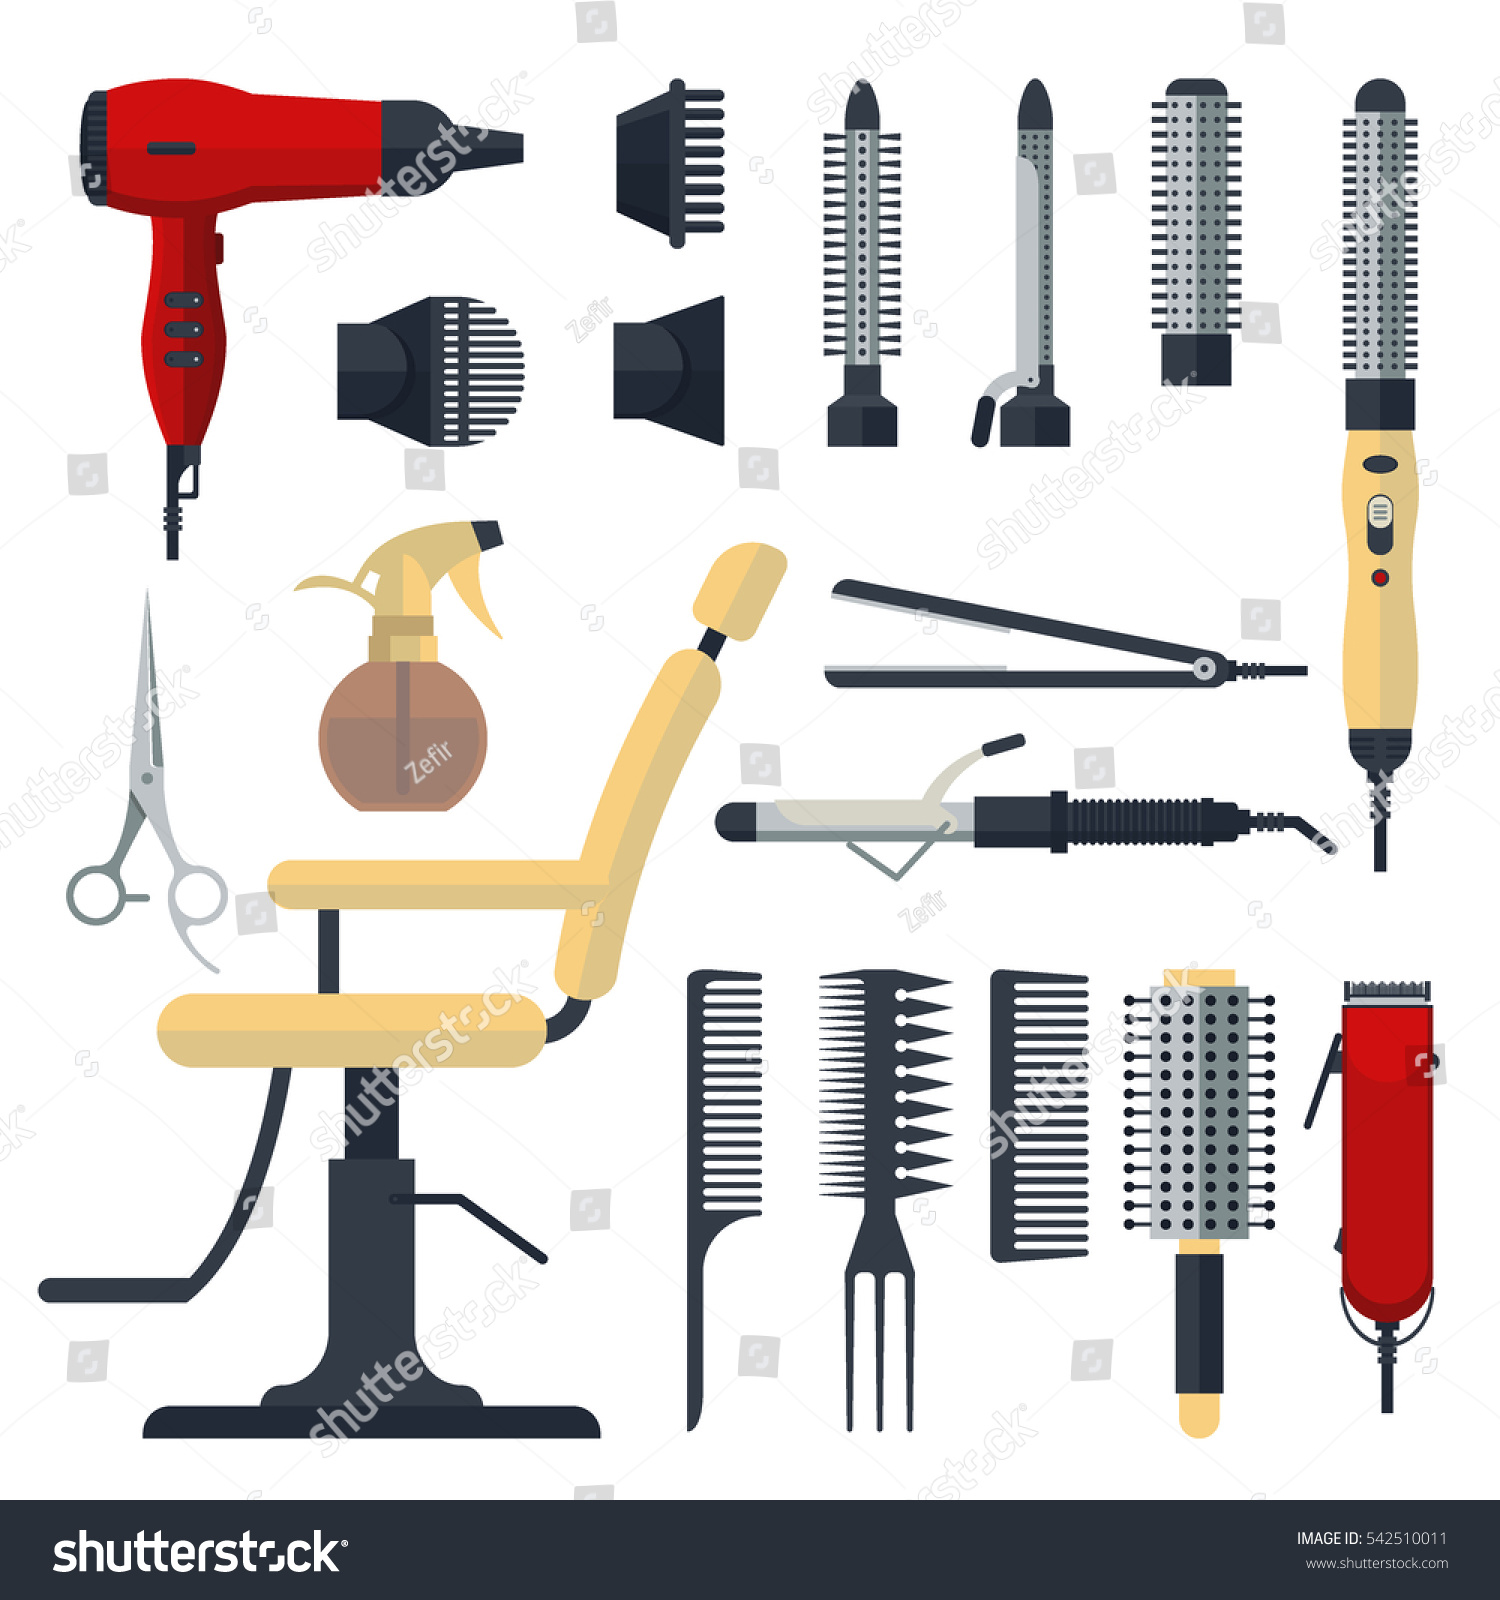 set hairdresser objects flat style isolated stock vector 542510011 shutterstock. Black Bedroom Furniture Sets. Home Design Ideas